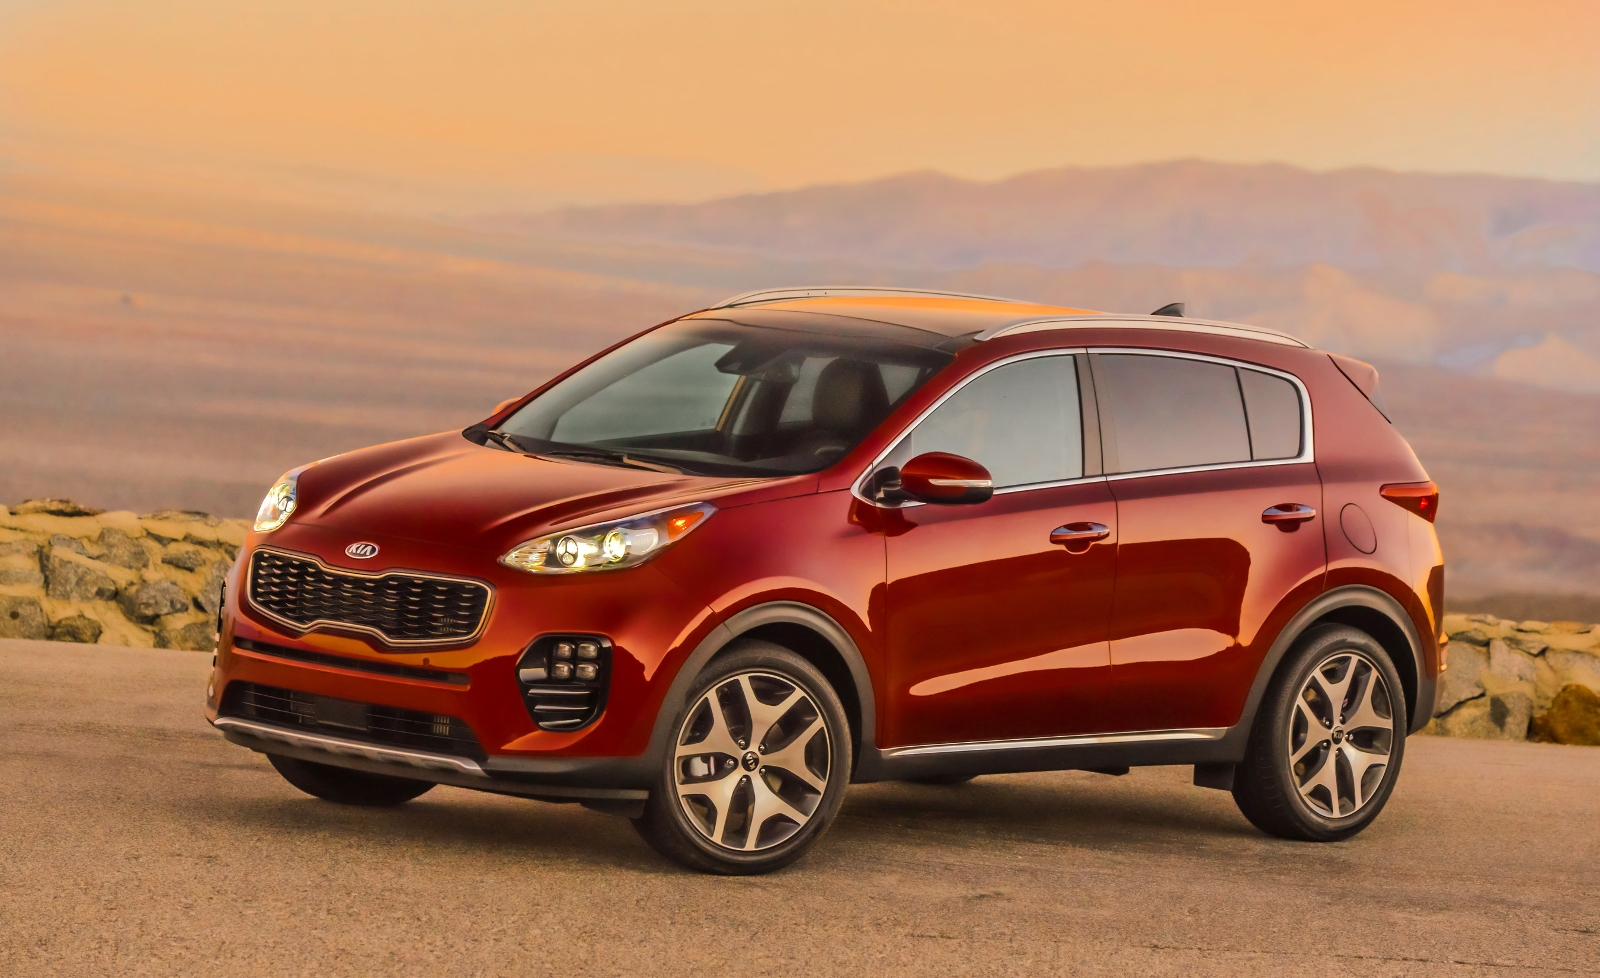 to be recognized by the experts at kelley blue book as a best buy among some of the toughest competition demonstrates the all new sportage is a breed apart